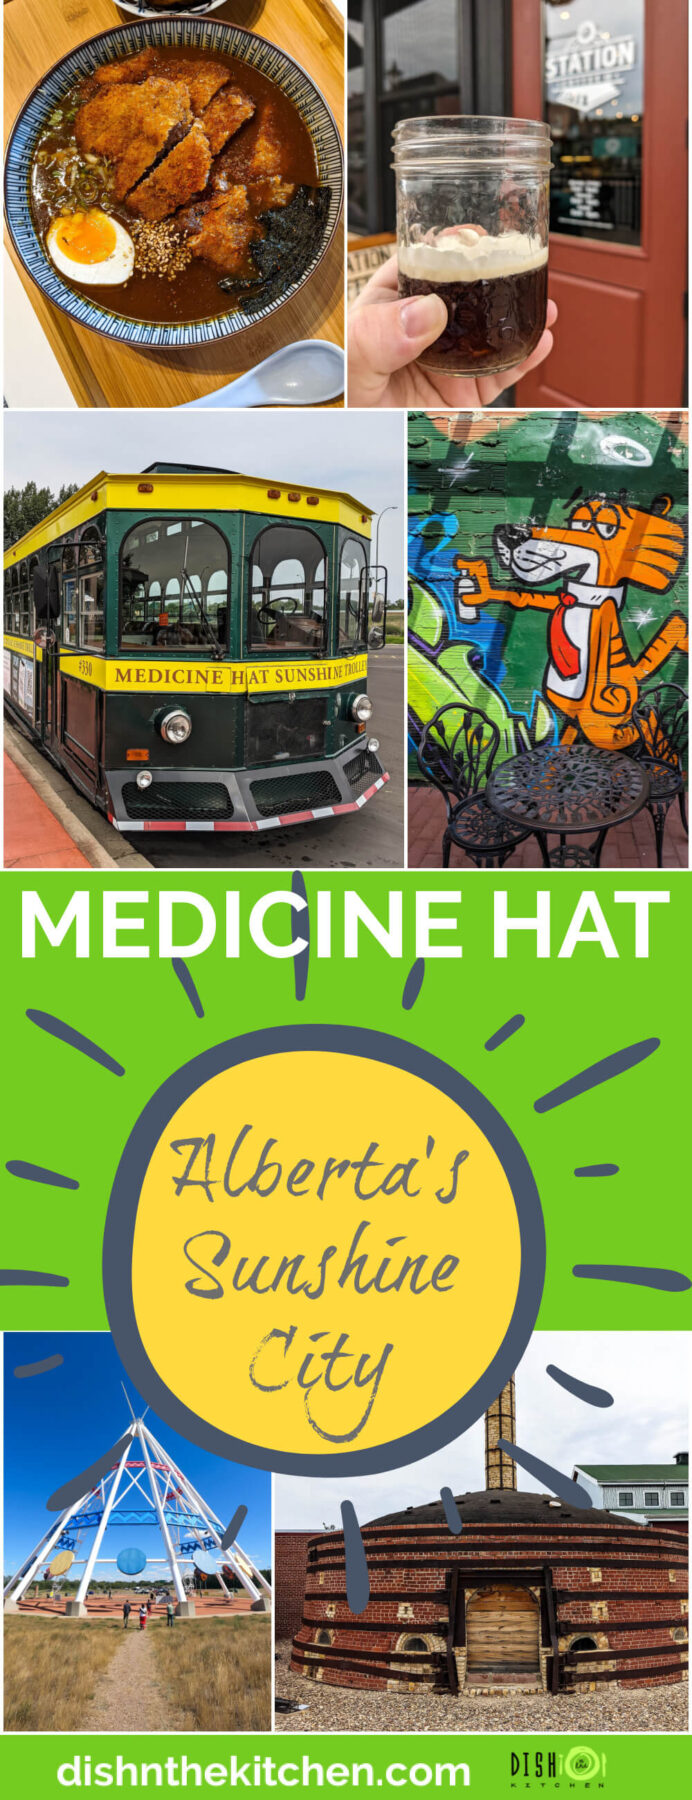 Pinterest image featuring a collection of image showing drinks, eats, and things to do in Medicine Hat, Alberta.